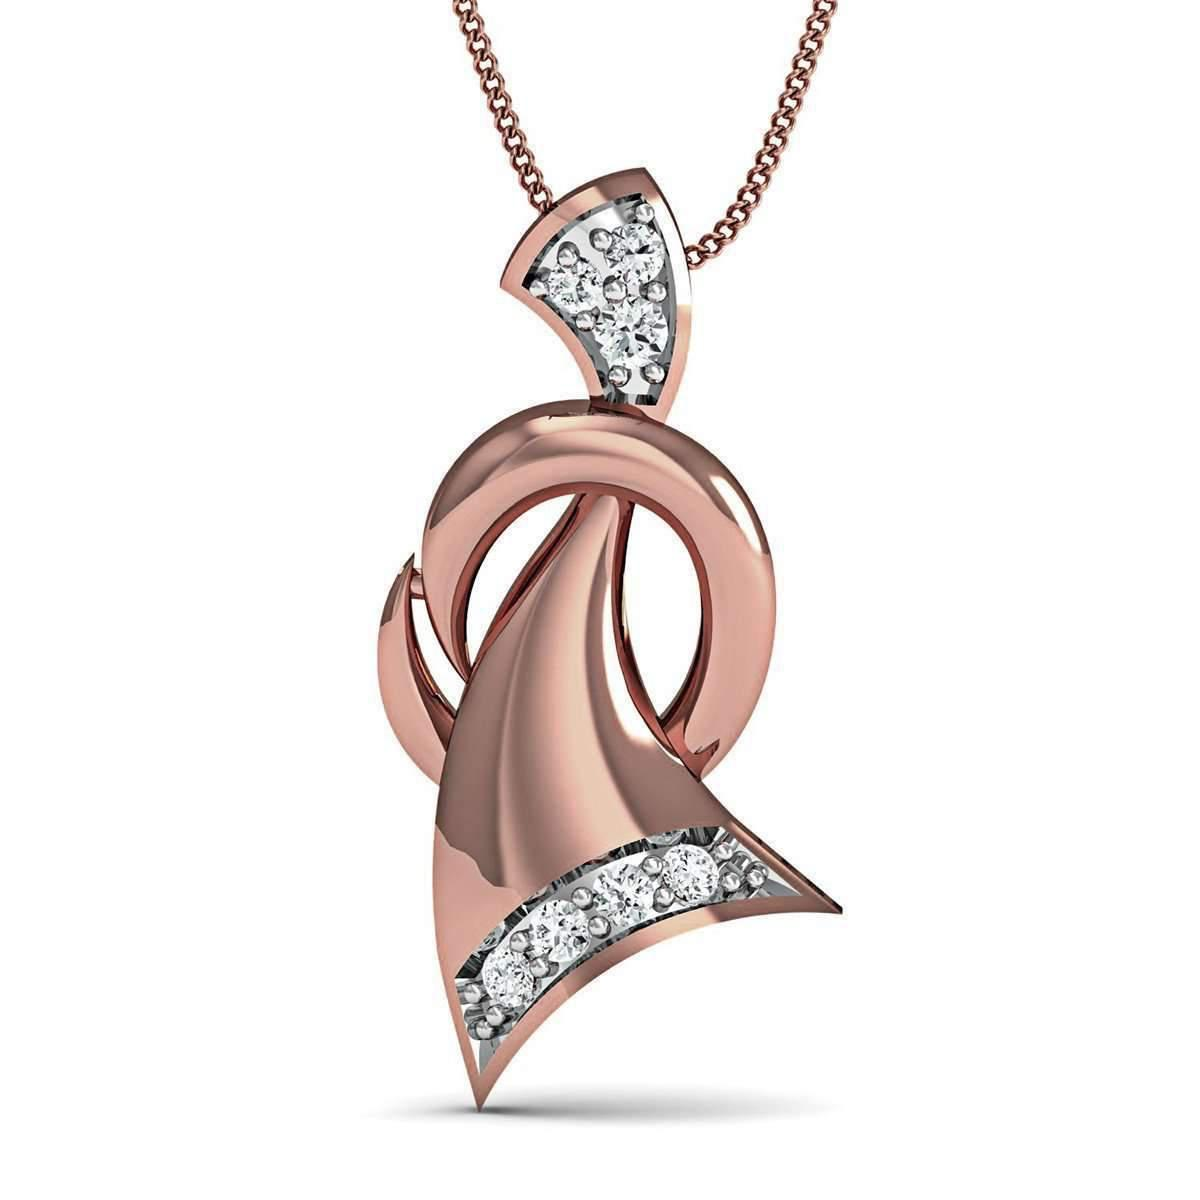 Diamoire Jewels Pave Set 7 Diamond Pendant Inspired by Nature in 10kt Rose Gold E6FBJ4